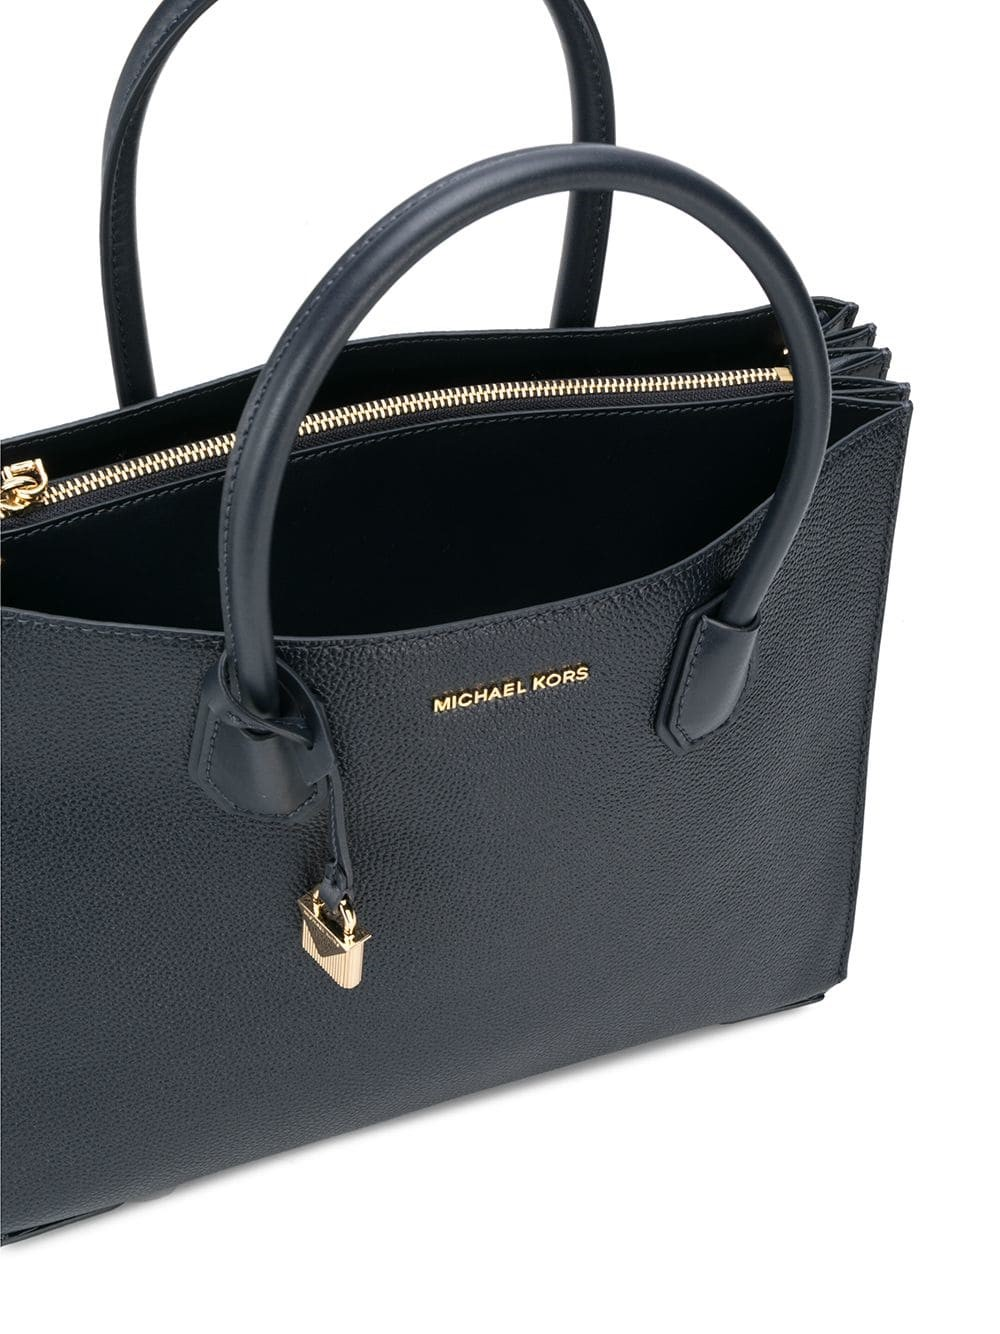 199703bd3eb6 michael kors mk LOGO TOTE BAG available on montiboutique.com - 27689